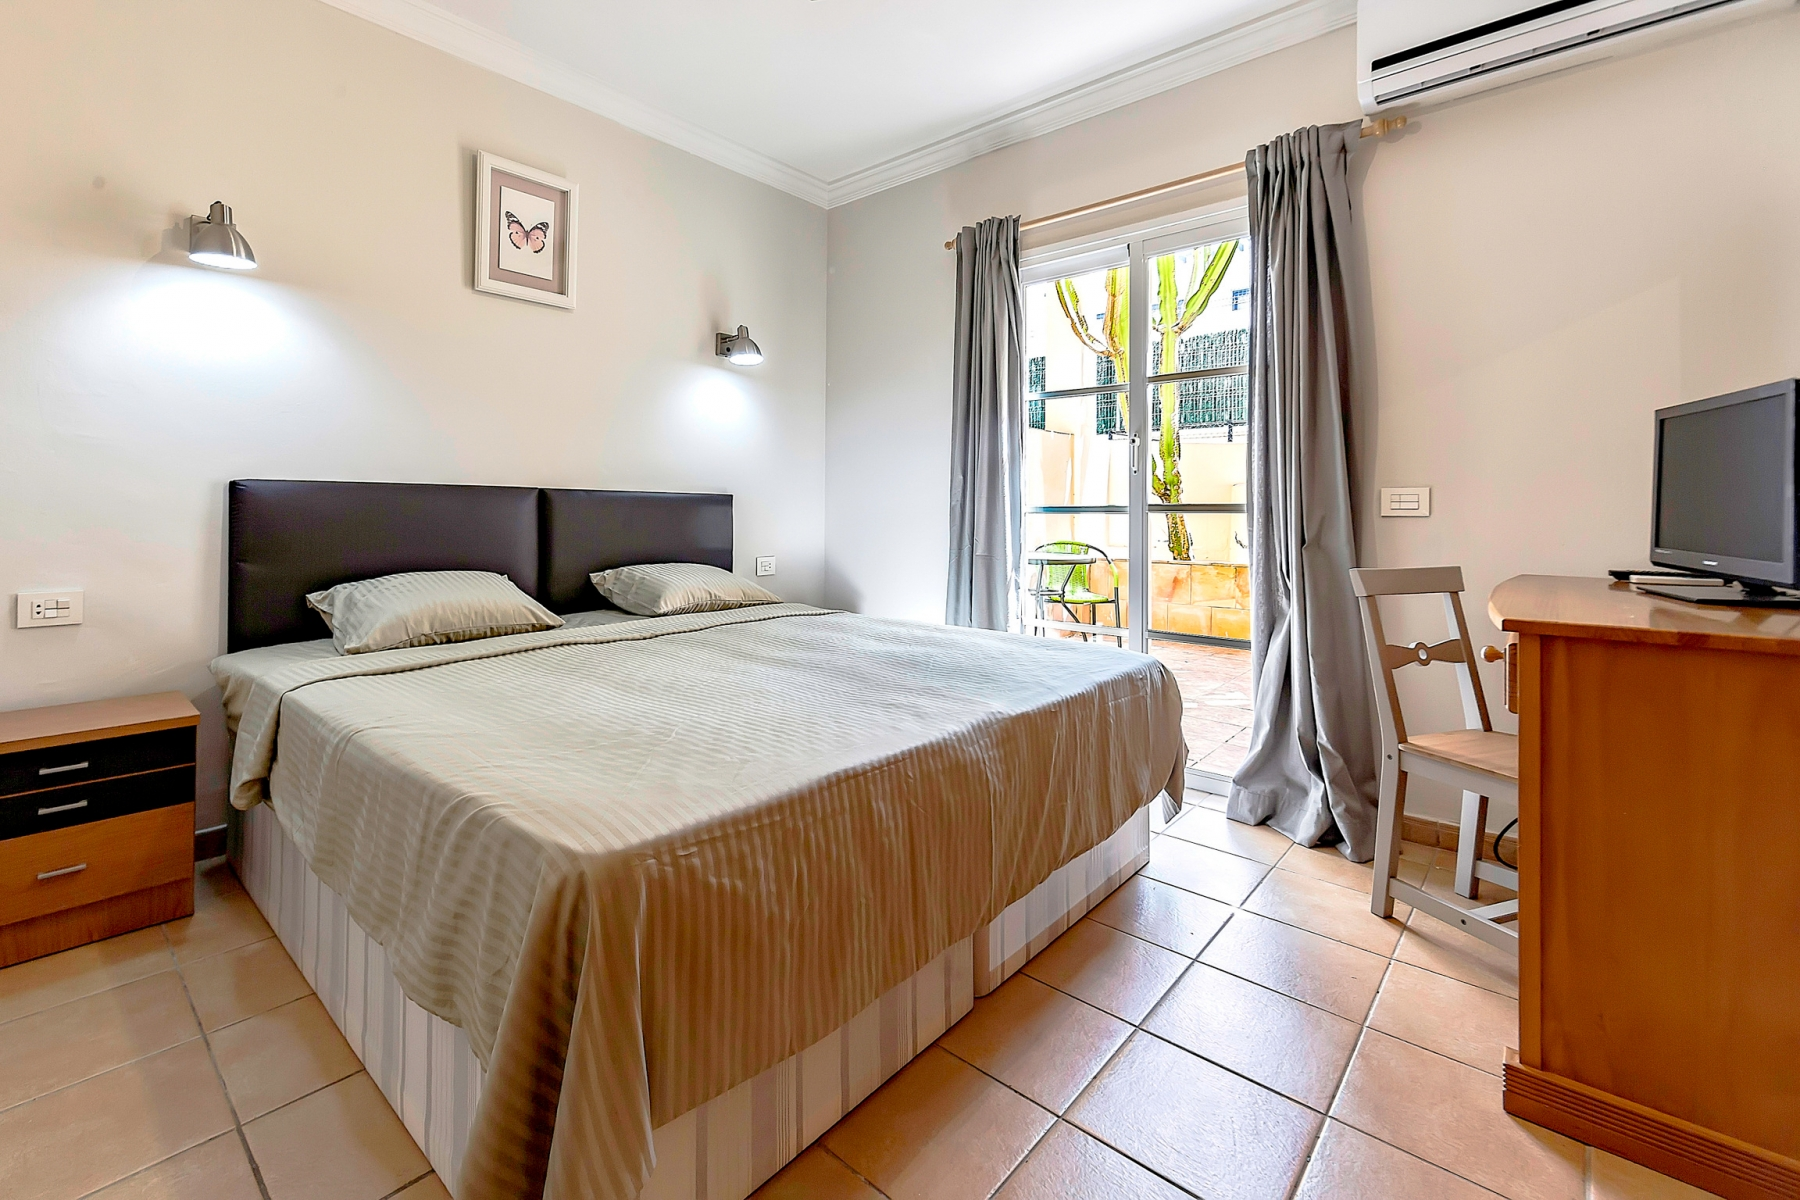 Properties for Sale in Tenerife, Canary Islands, Spain | SylkWayStar Real Estate. 1 bedroom apartment Yucca Park. Image-22578